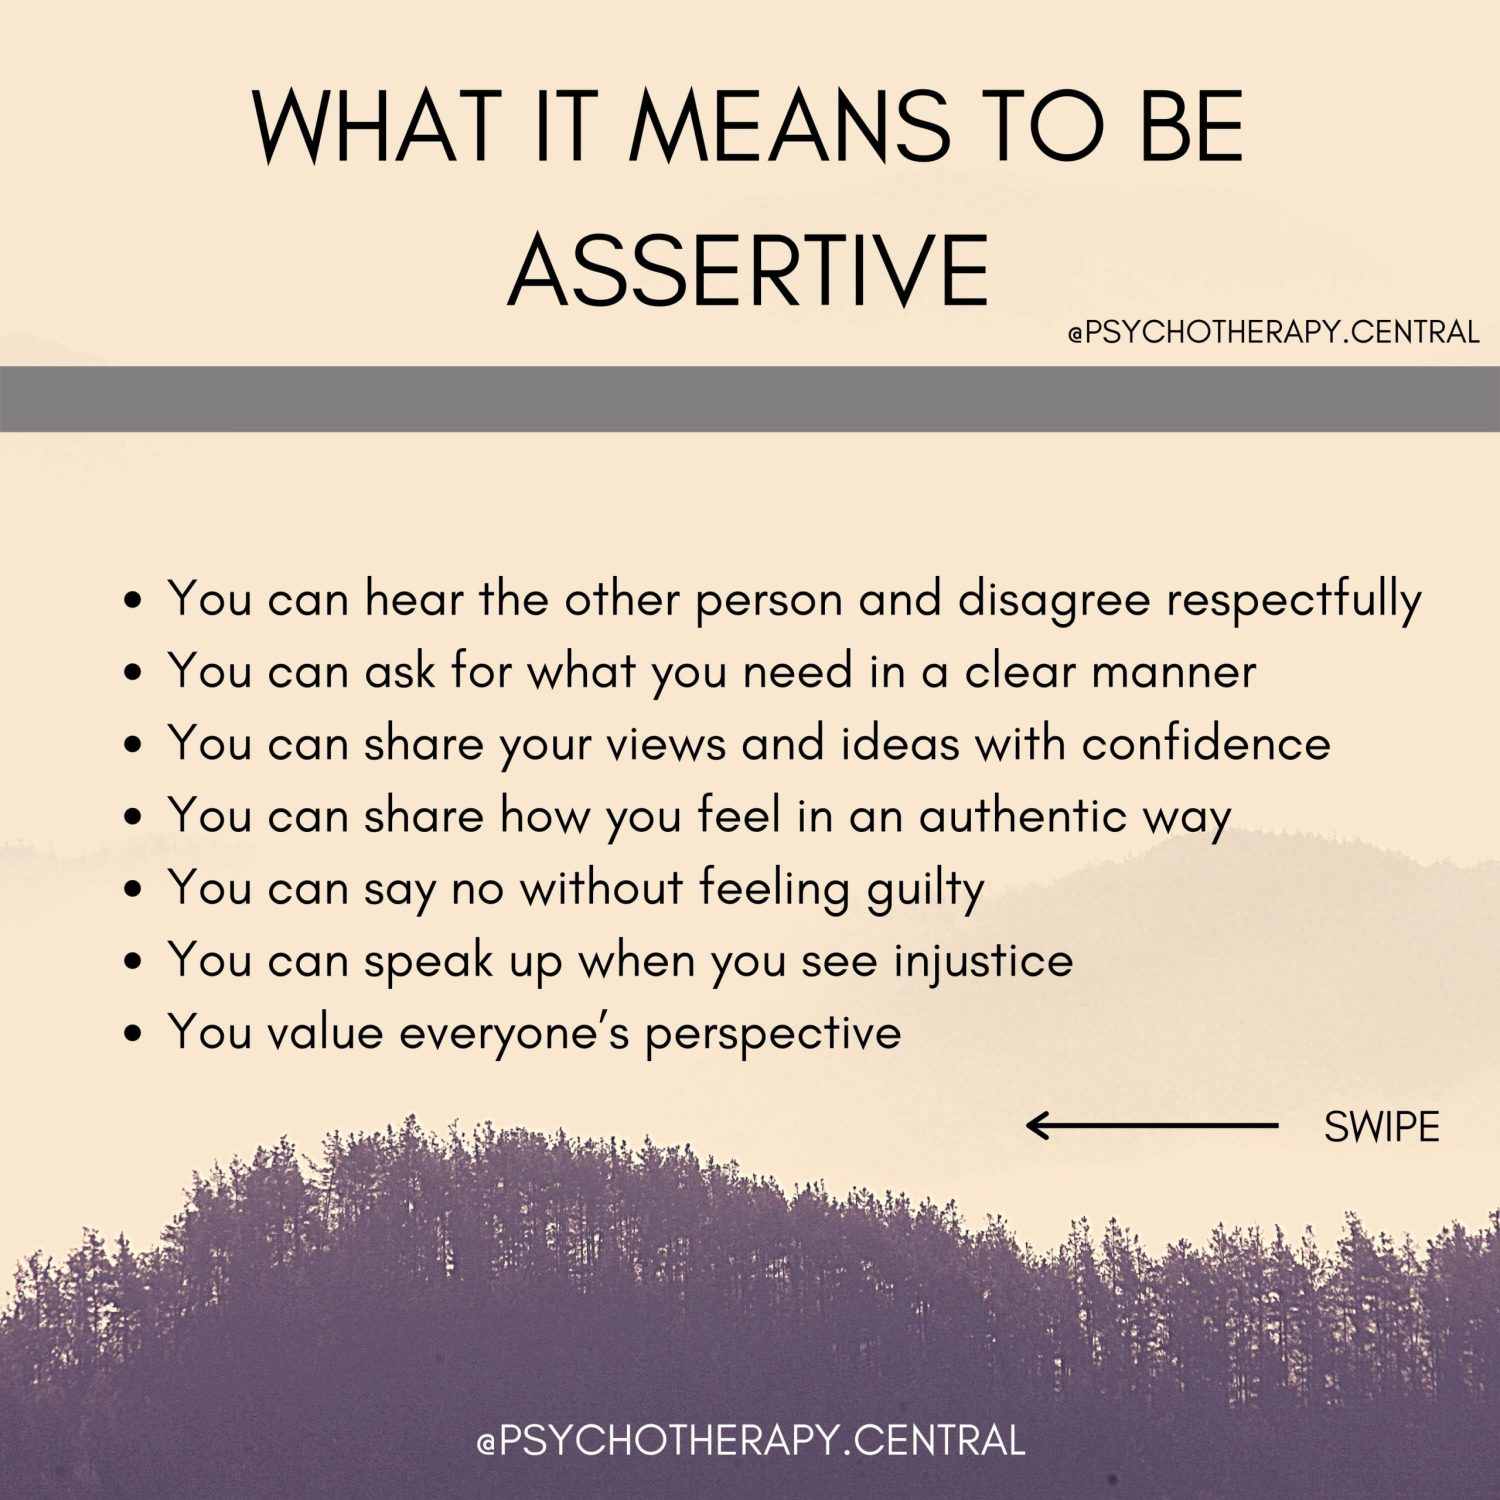 what it means to be assertive